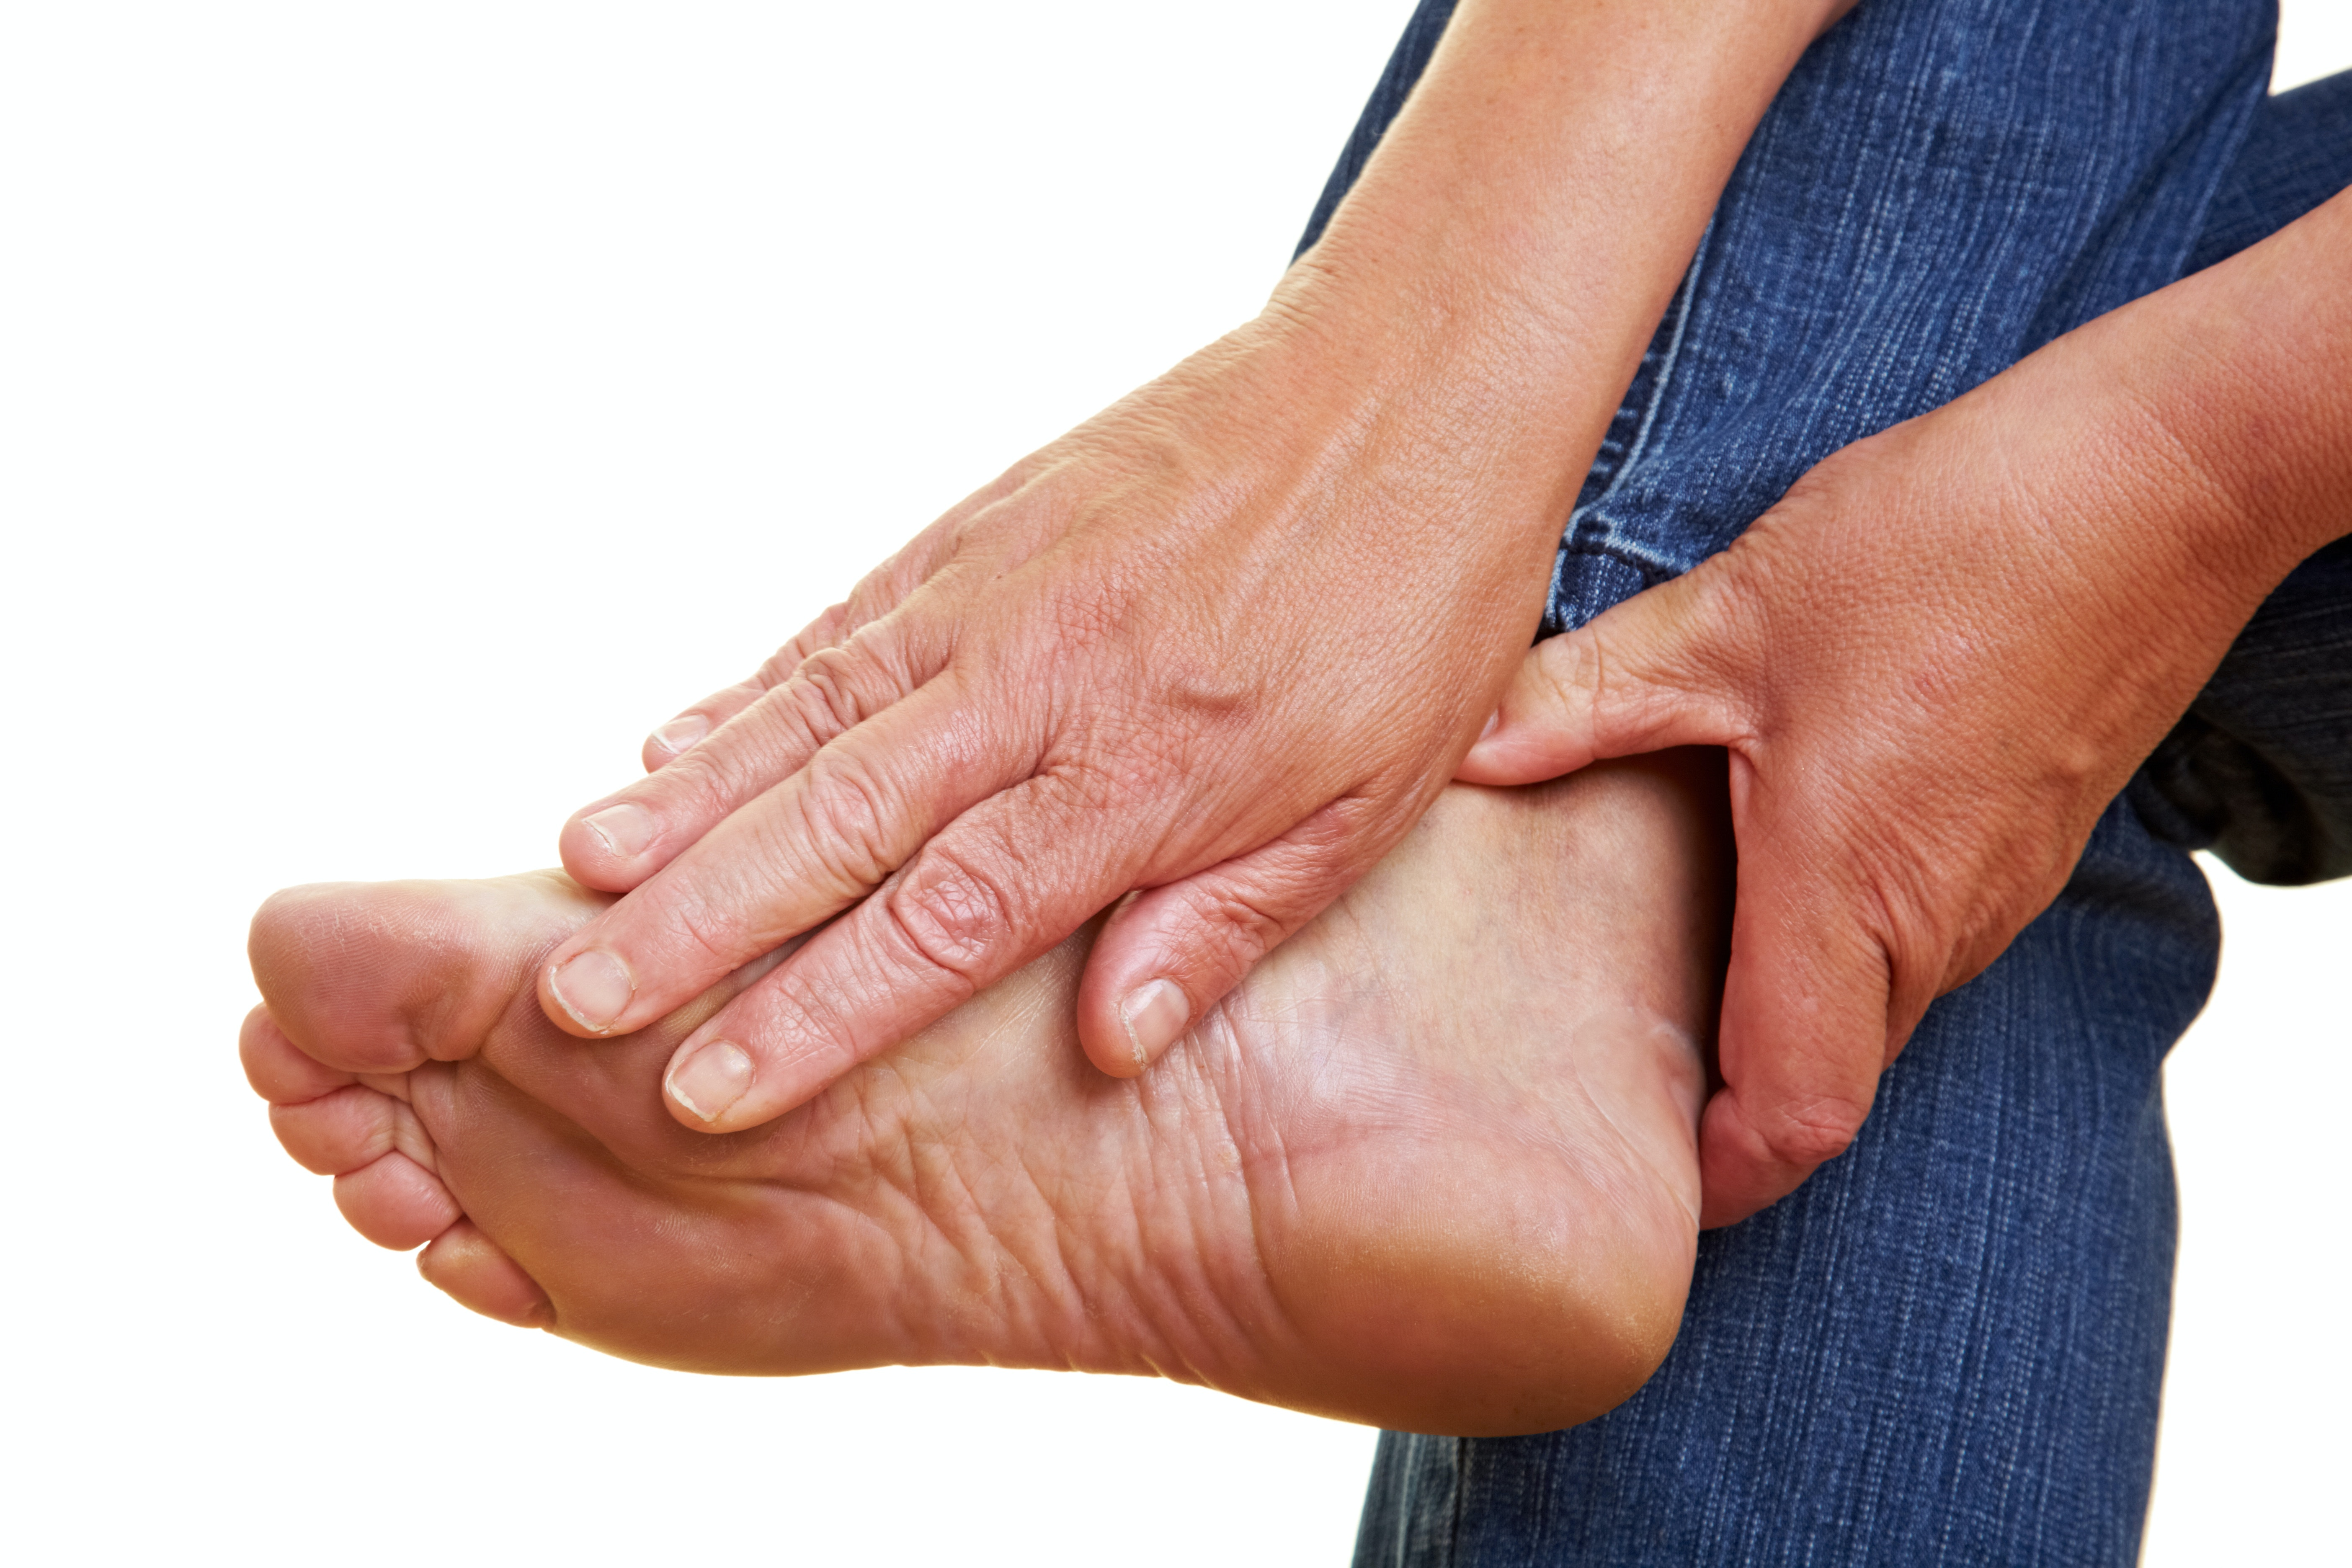 An image depicting a person suffering from sharp, stabbing foot pain symptoms